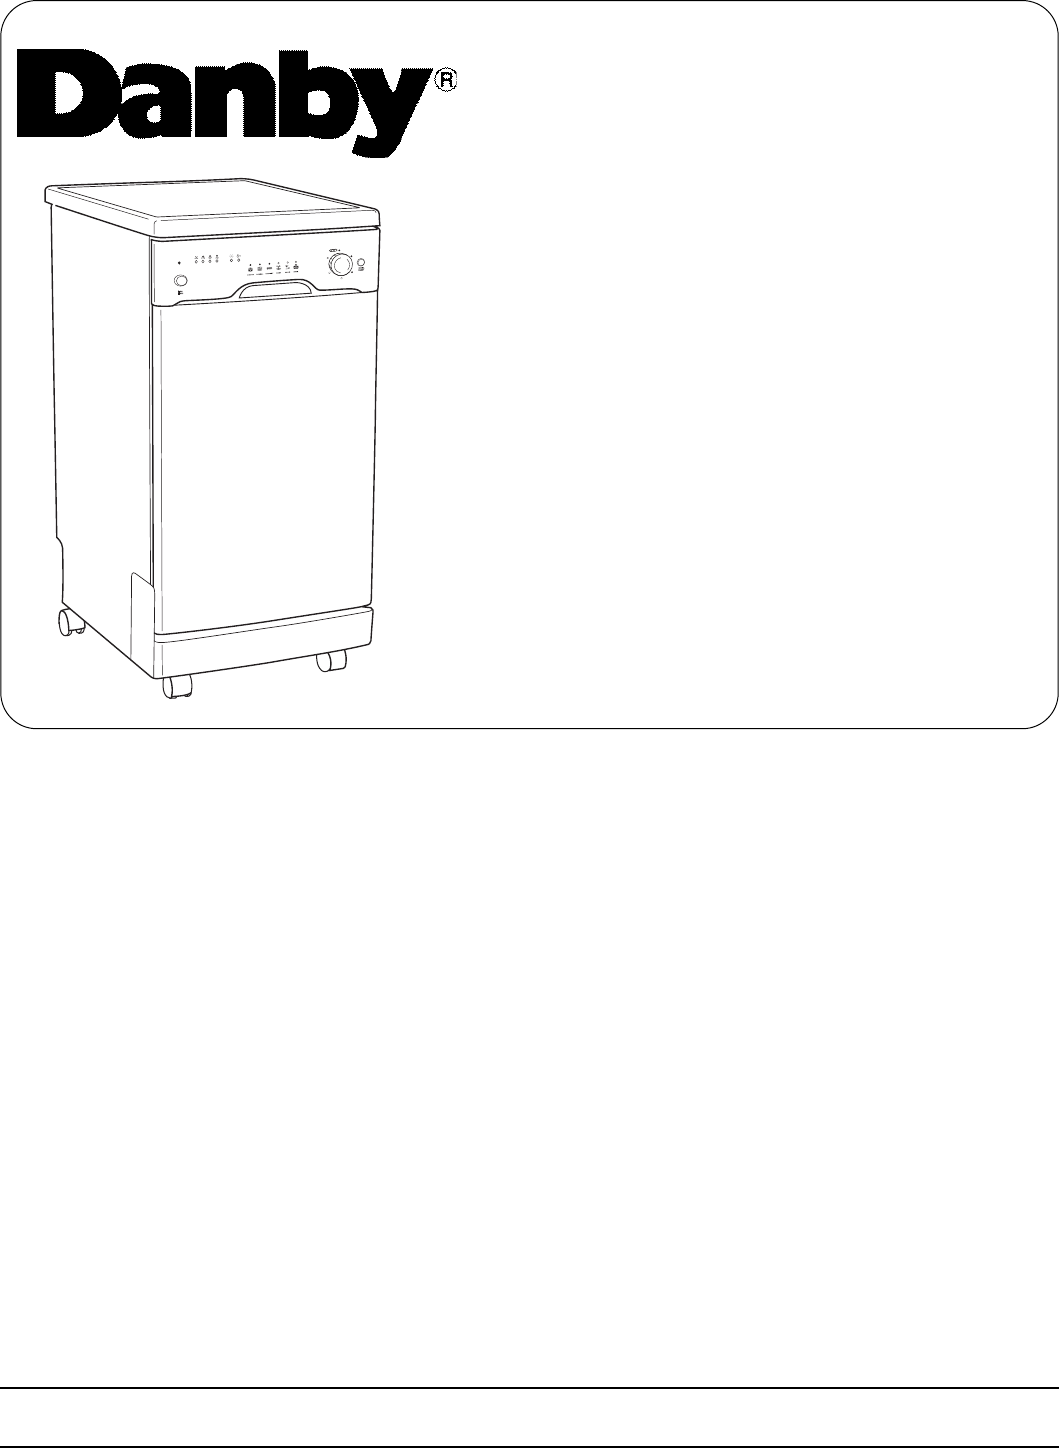 how to connect dishwasher danby